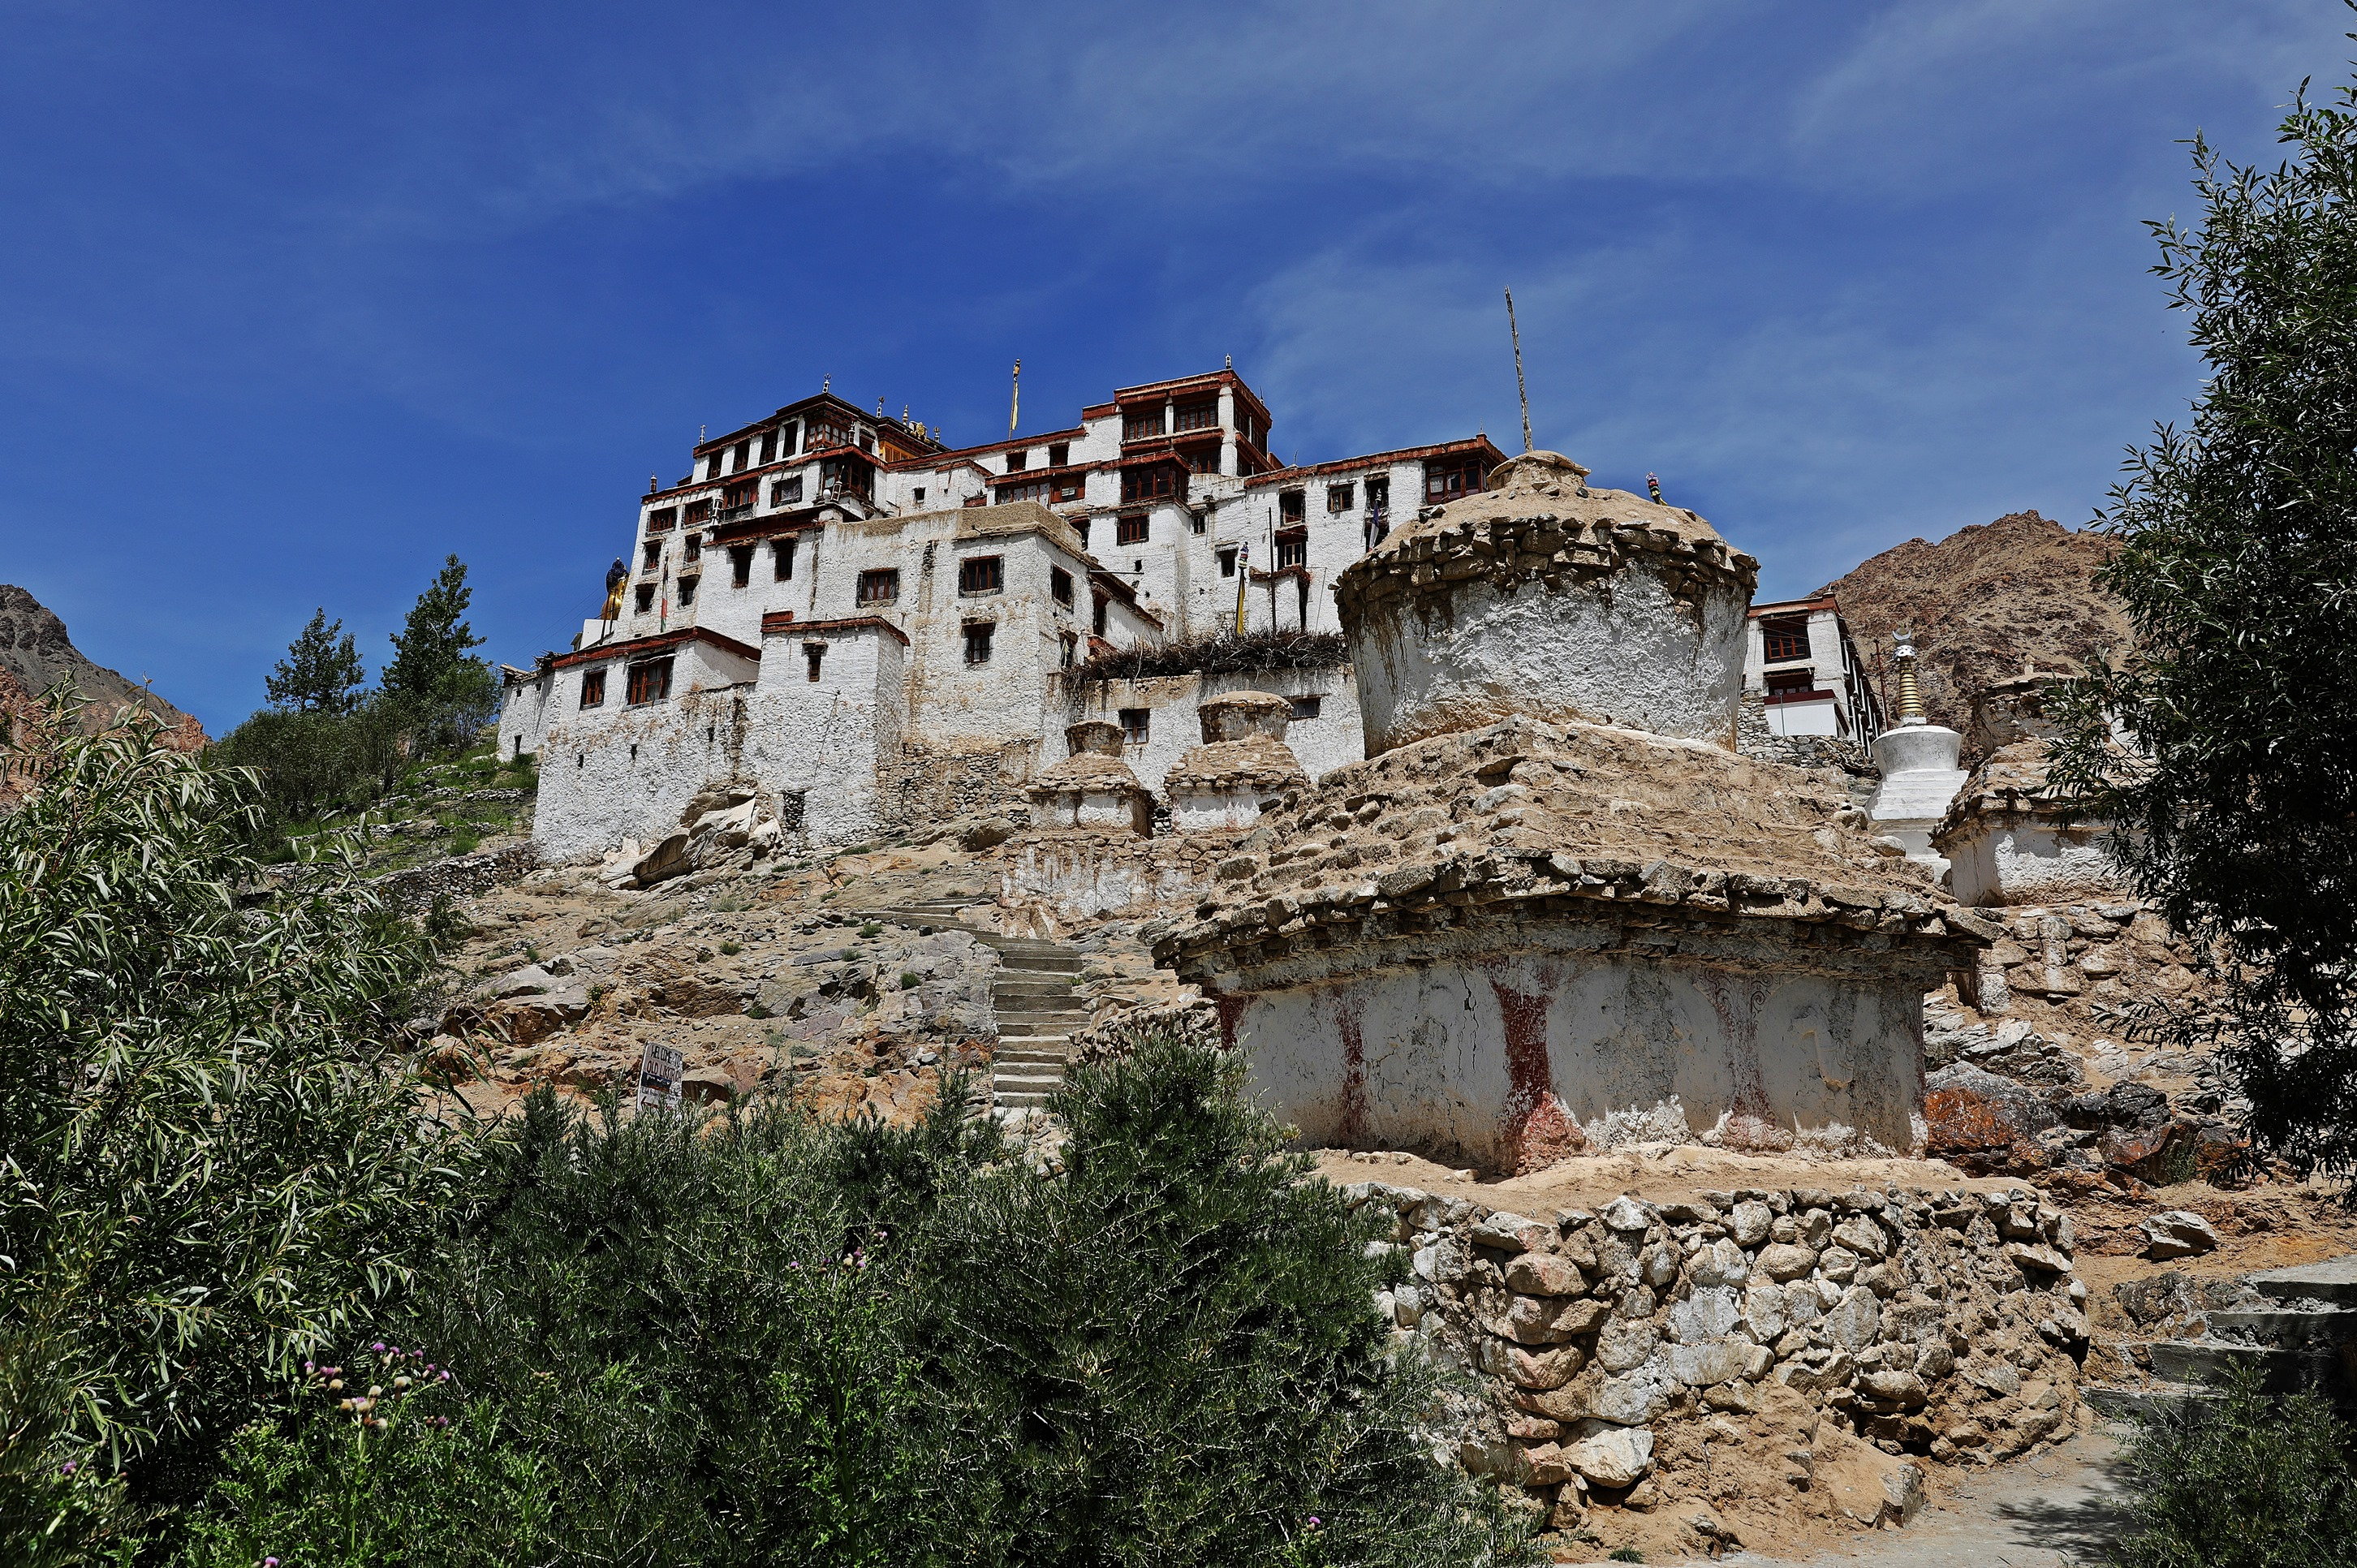 Likir Gompa with an old chorten in front